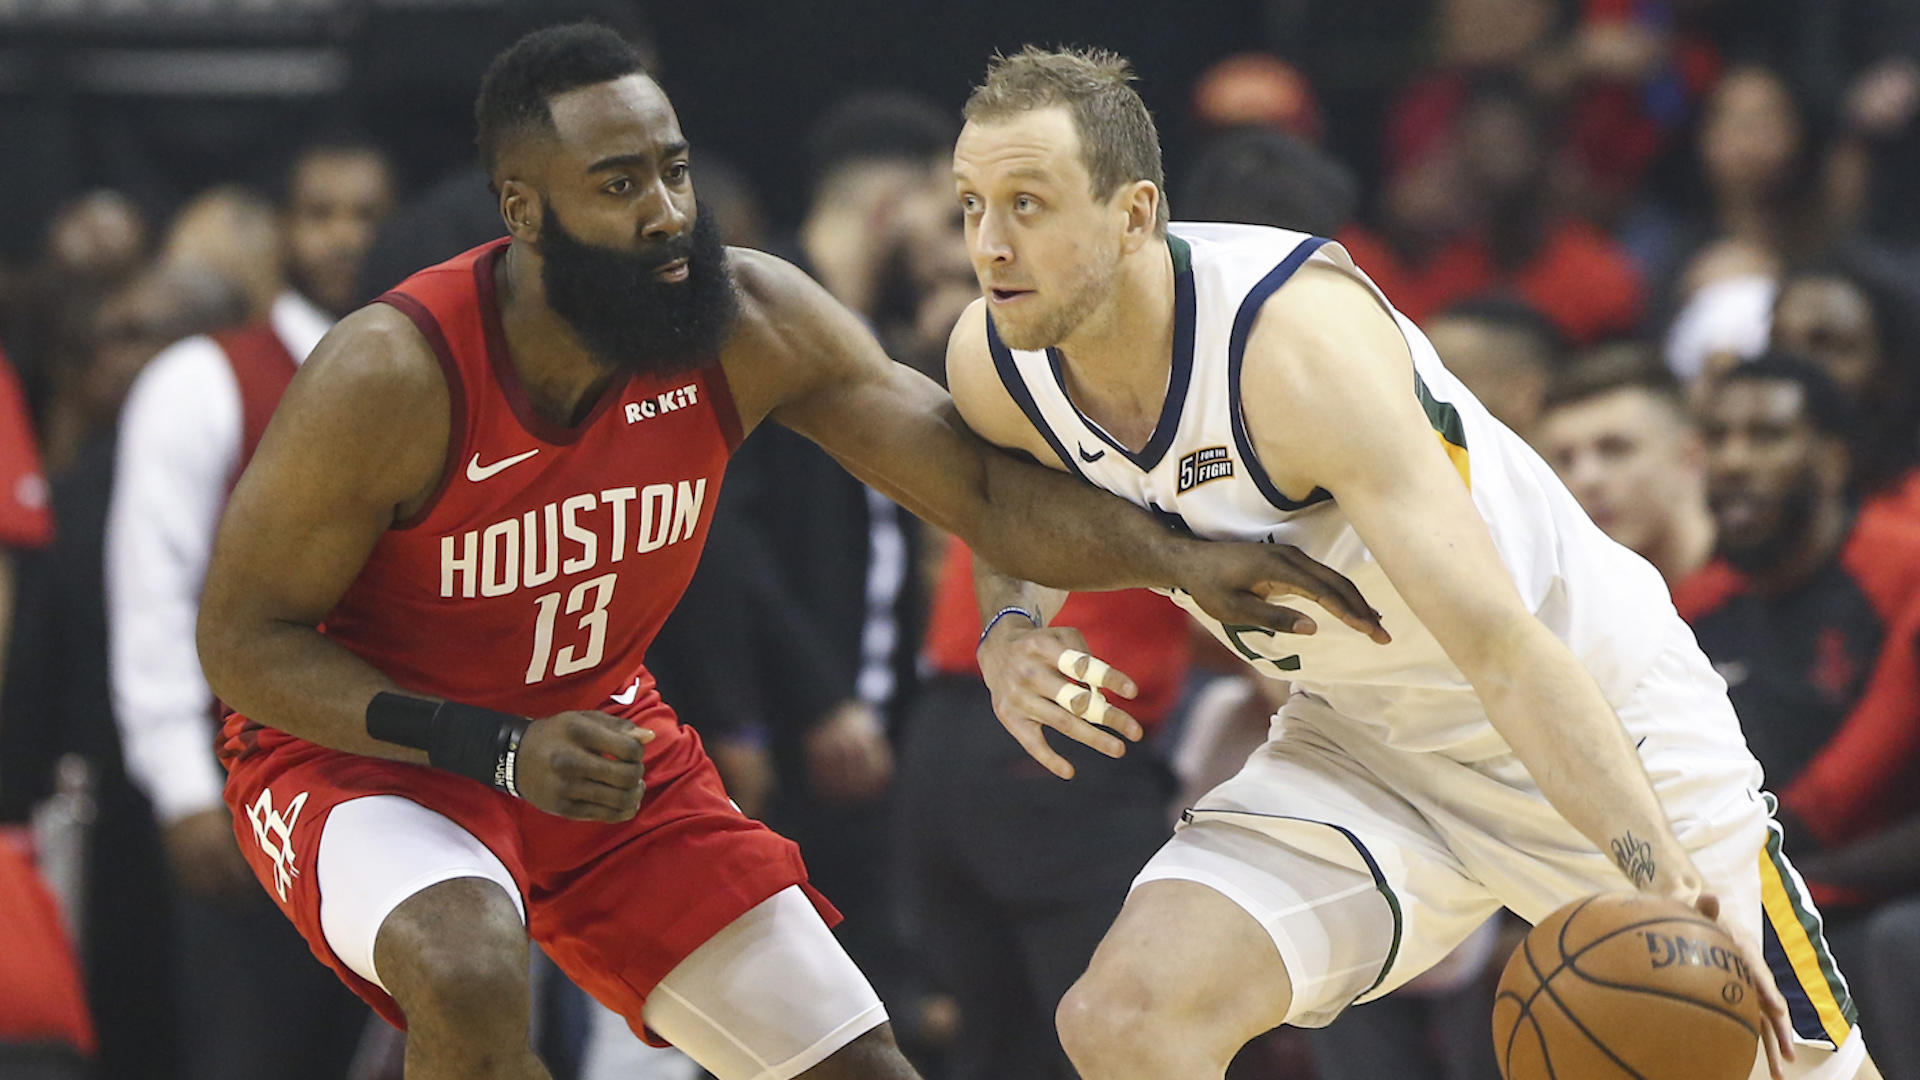 NBA Playoffs 2019: Rockets vs. Jazz odds, picks, predictions for Game 2 from advanced model on 77-62 roll